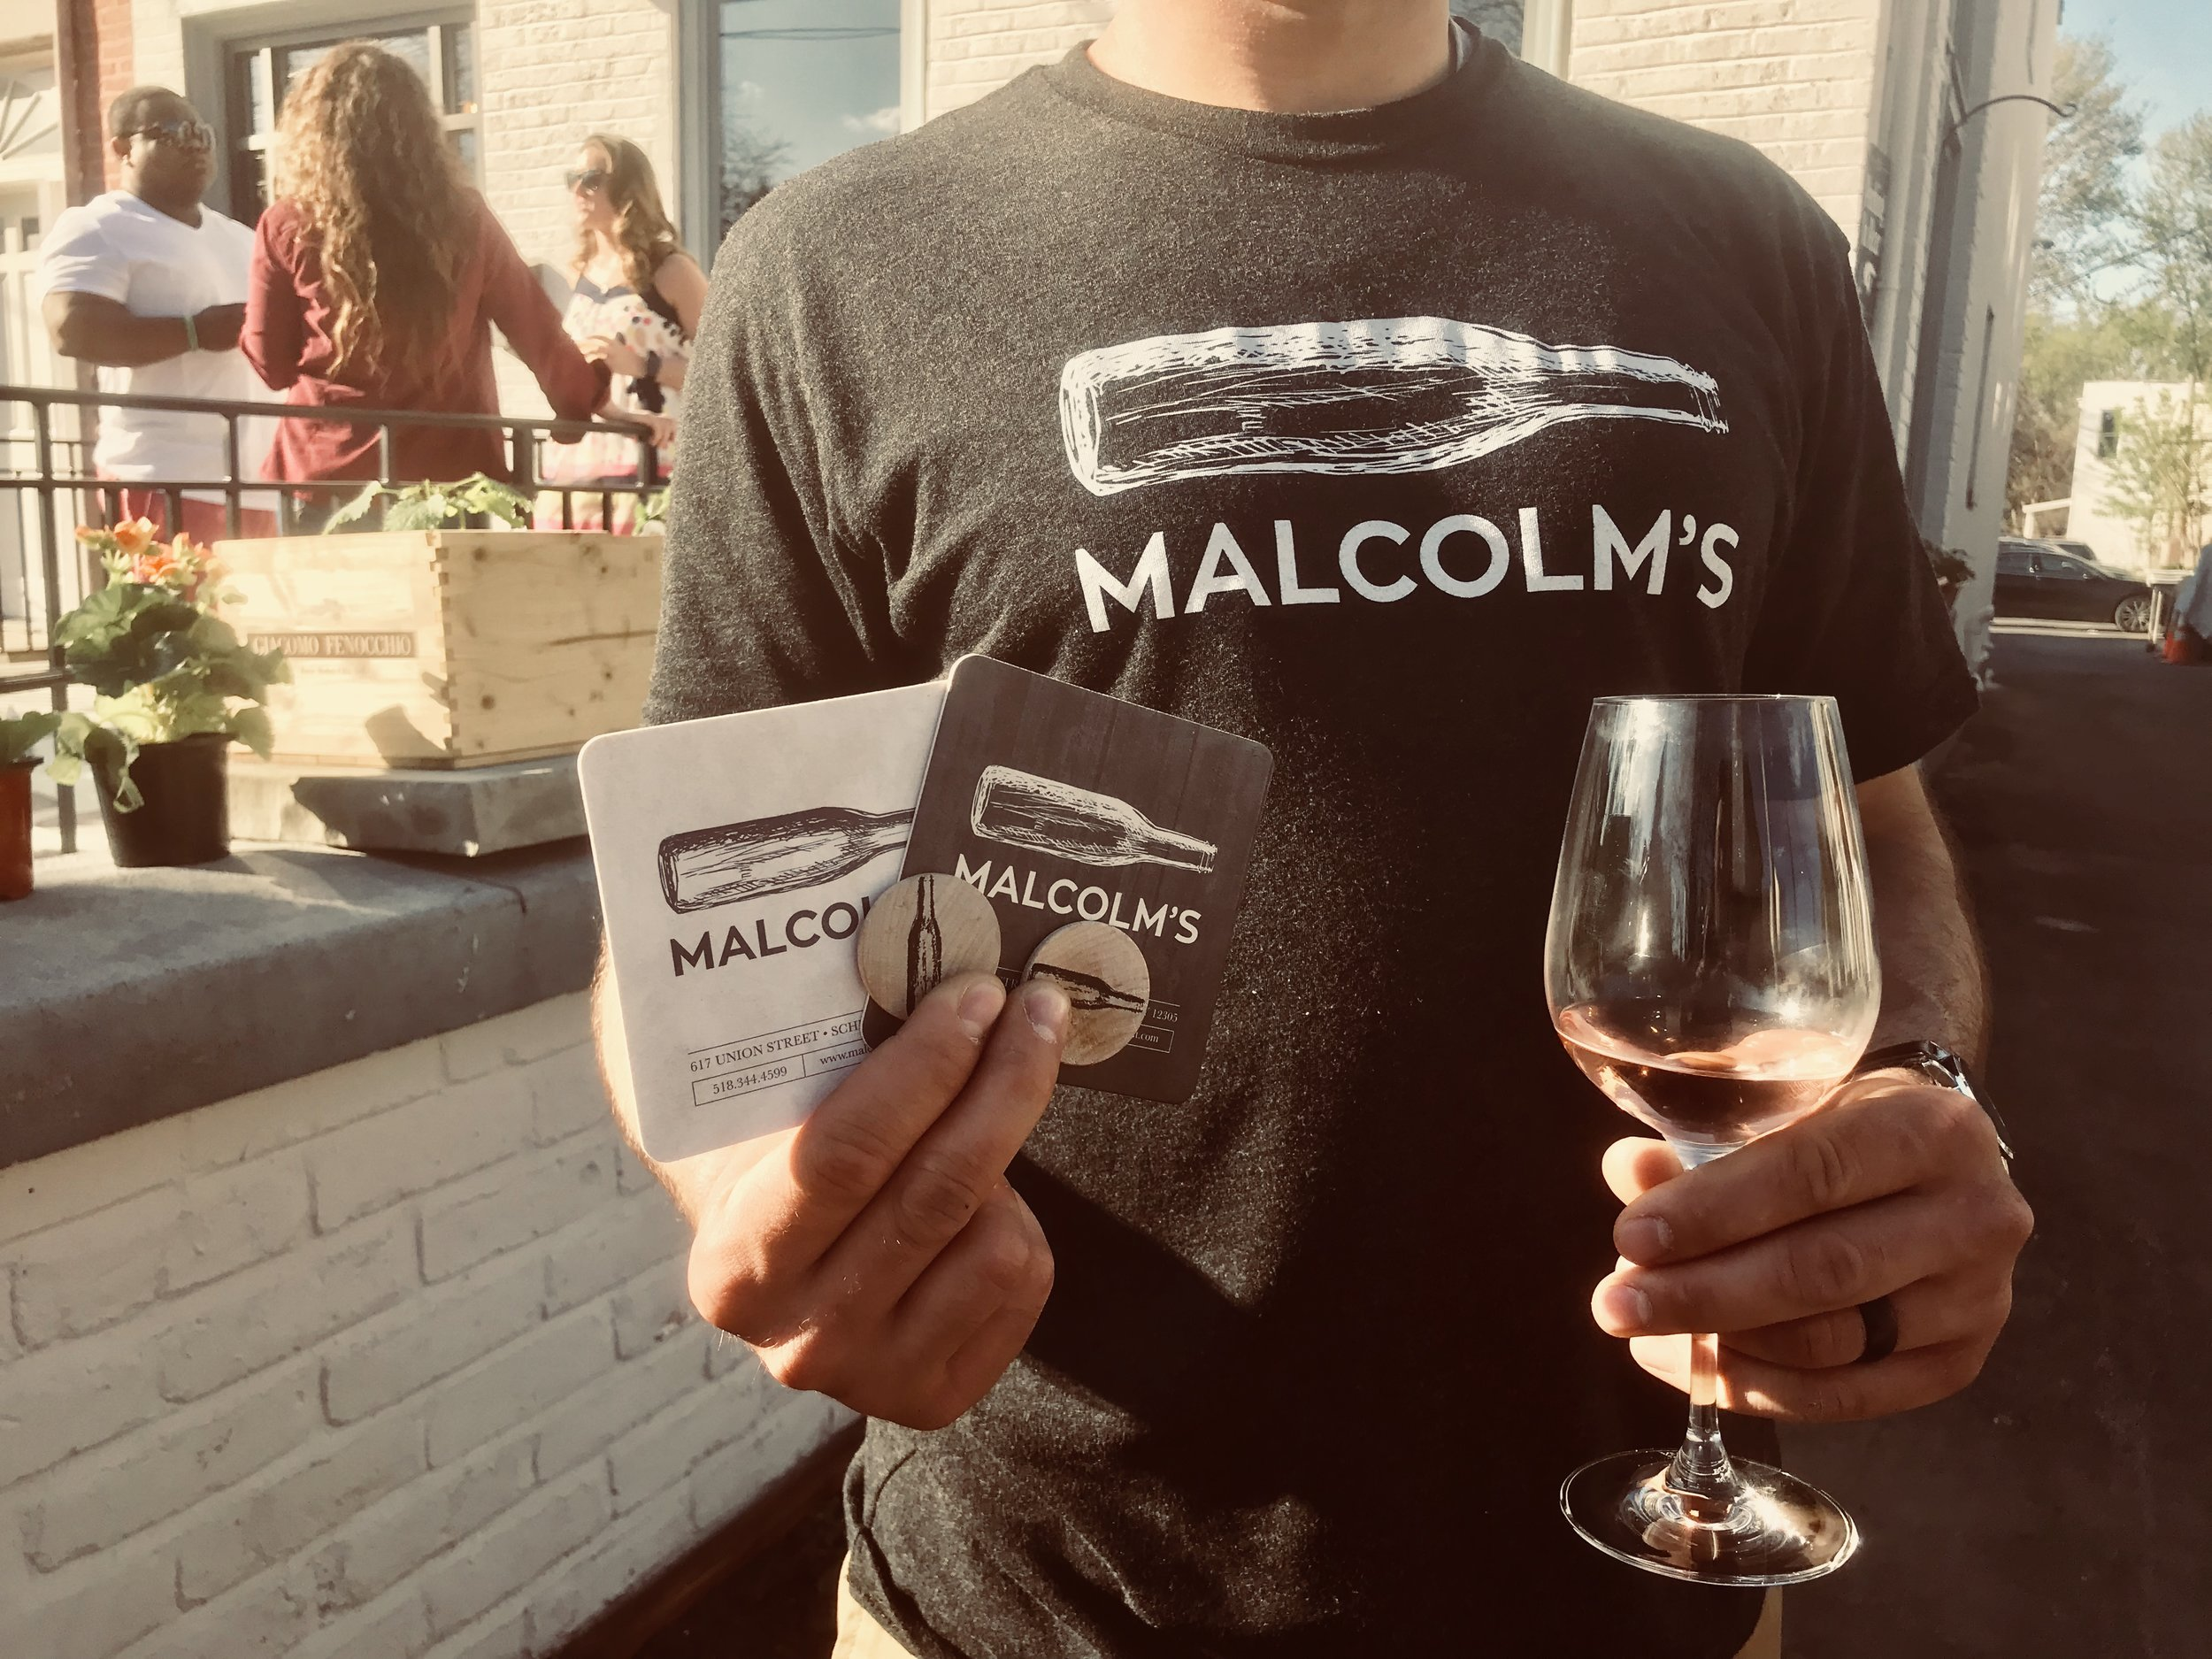 Bottoms Up - From t-shirts to aprons, coasters and gift cards, Malcolm's takes great pride in keeping every detail branded. Fun fact: the double-sided coasters, with one side light and one dark, are a sign to the waitstaff if patrons are drinking still or sparkling water for seamless service and attention to detail.